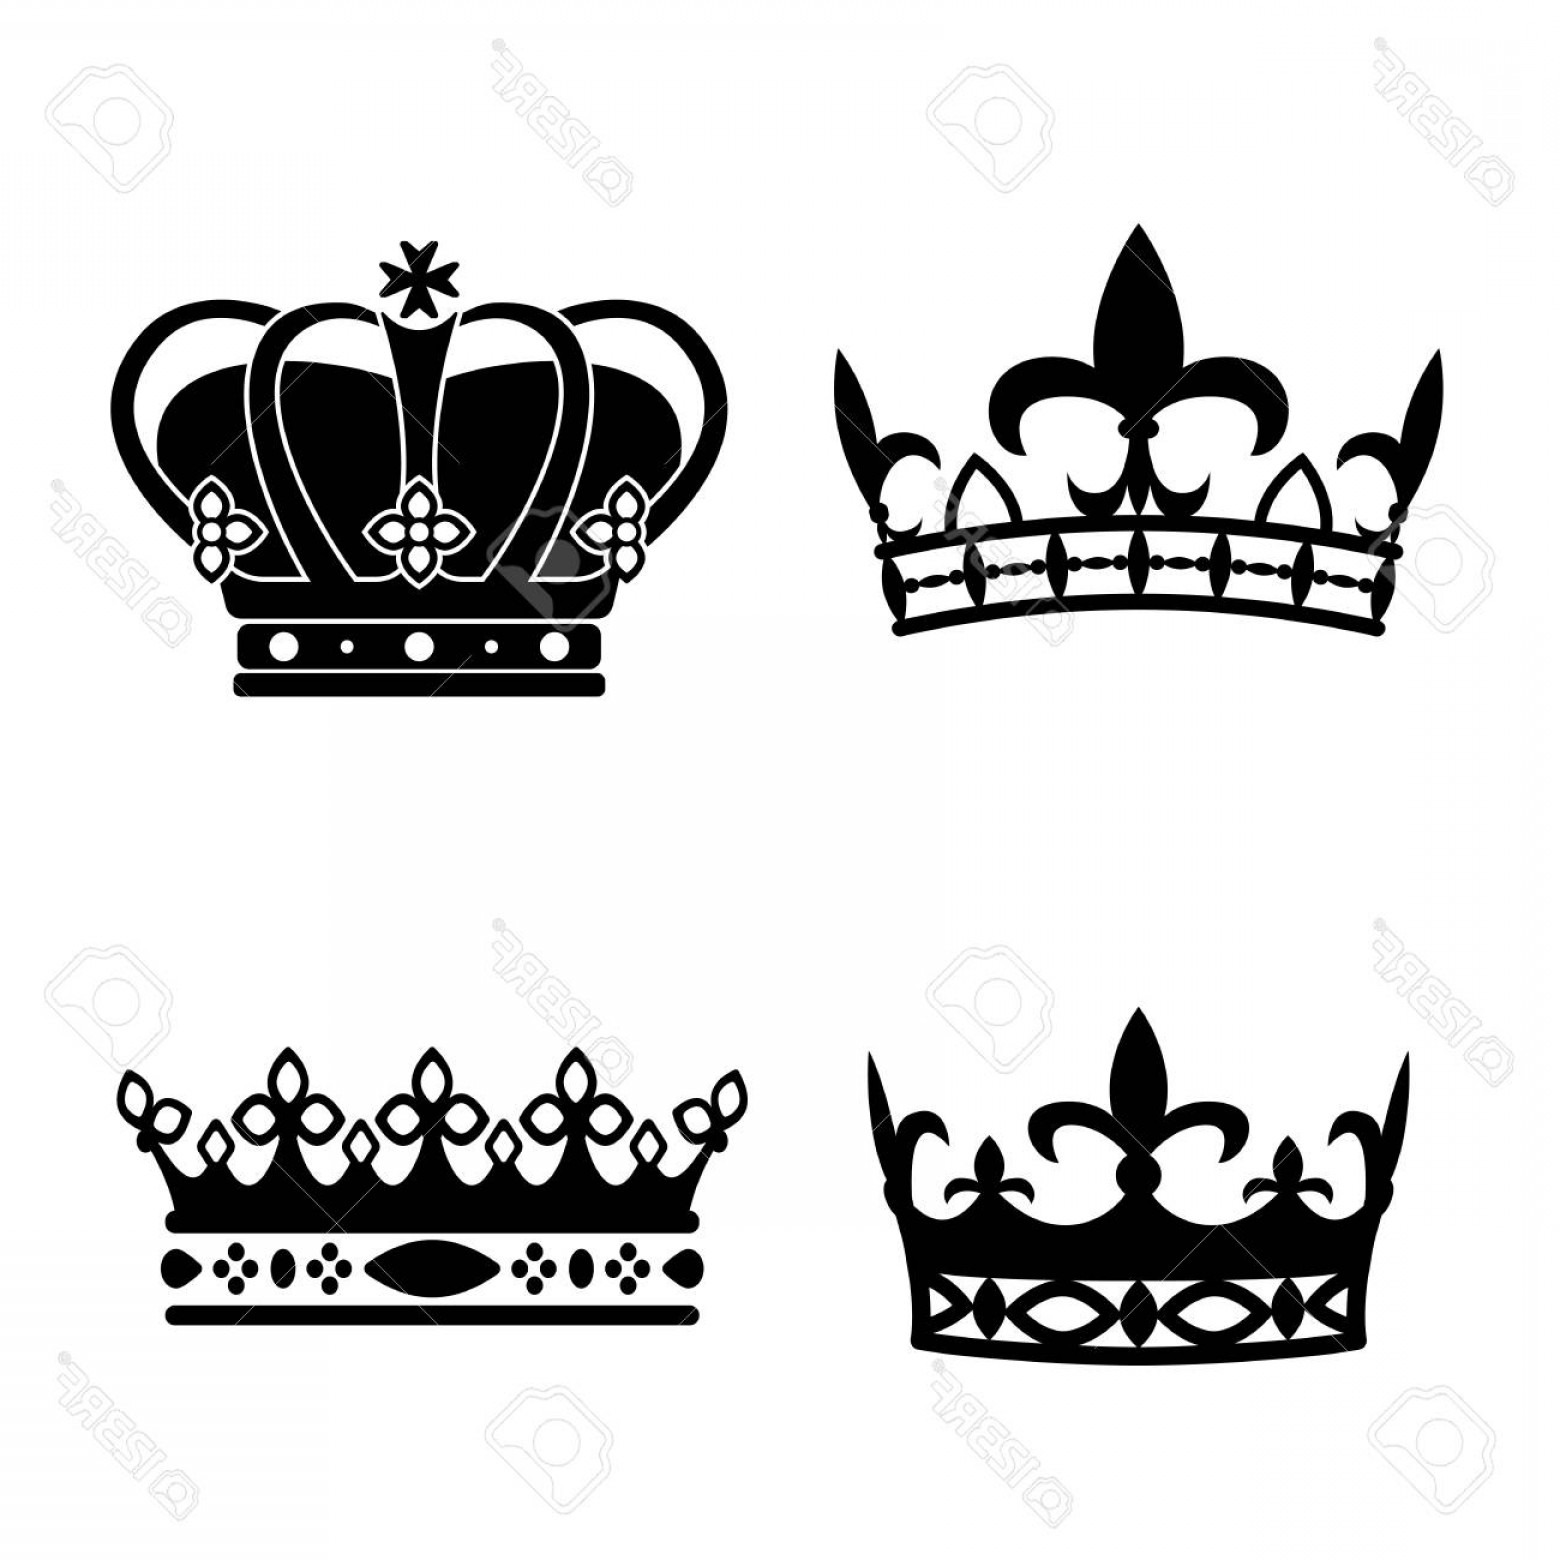 Tiara clipart vector svg royalty free download Crowns Tiaras Clipart Vector | HandandBeak svg royalty free download